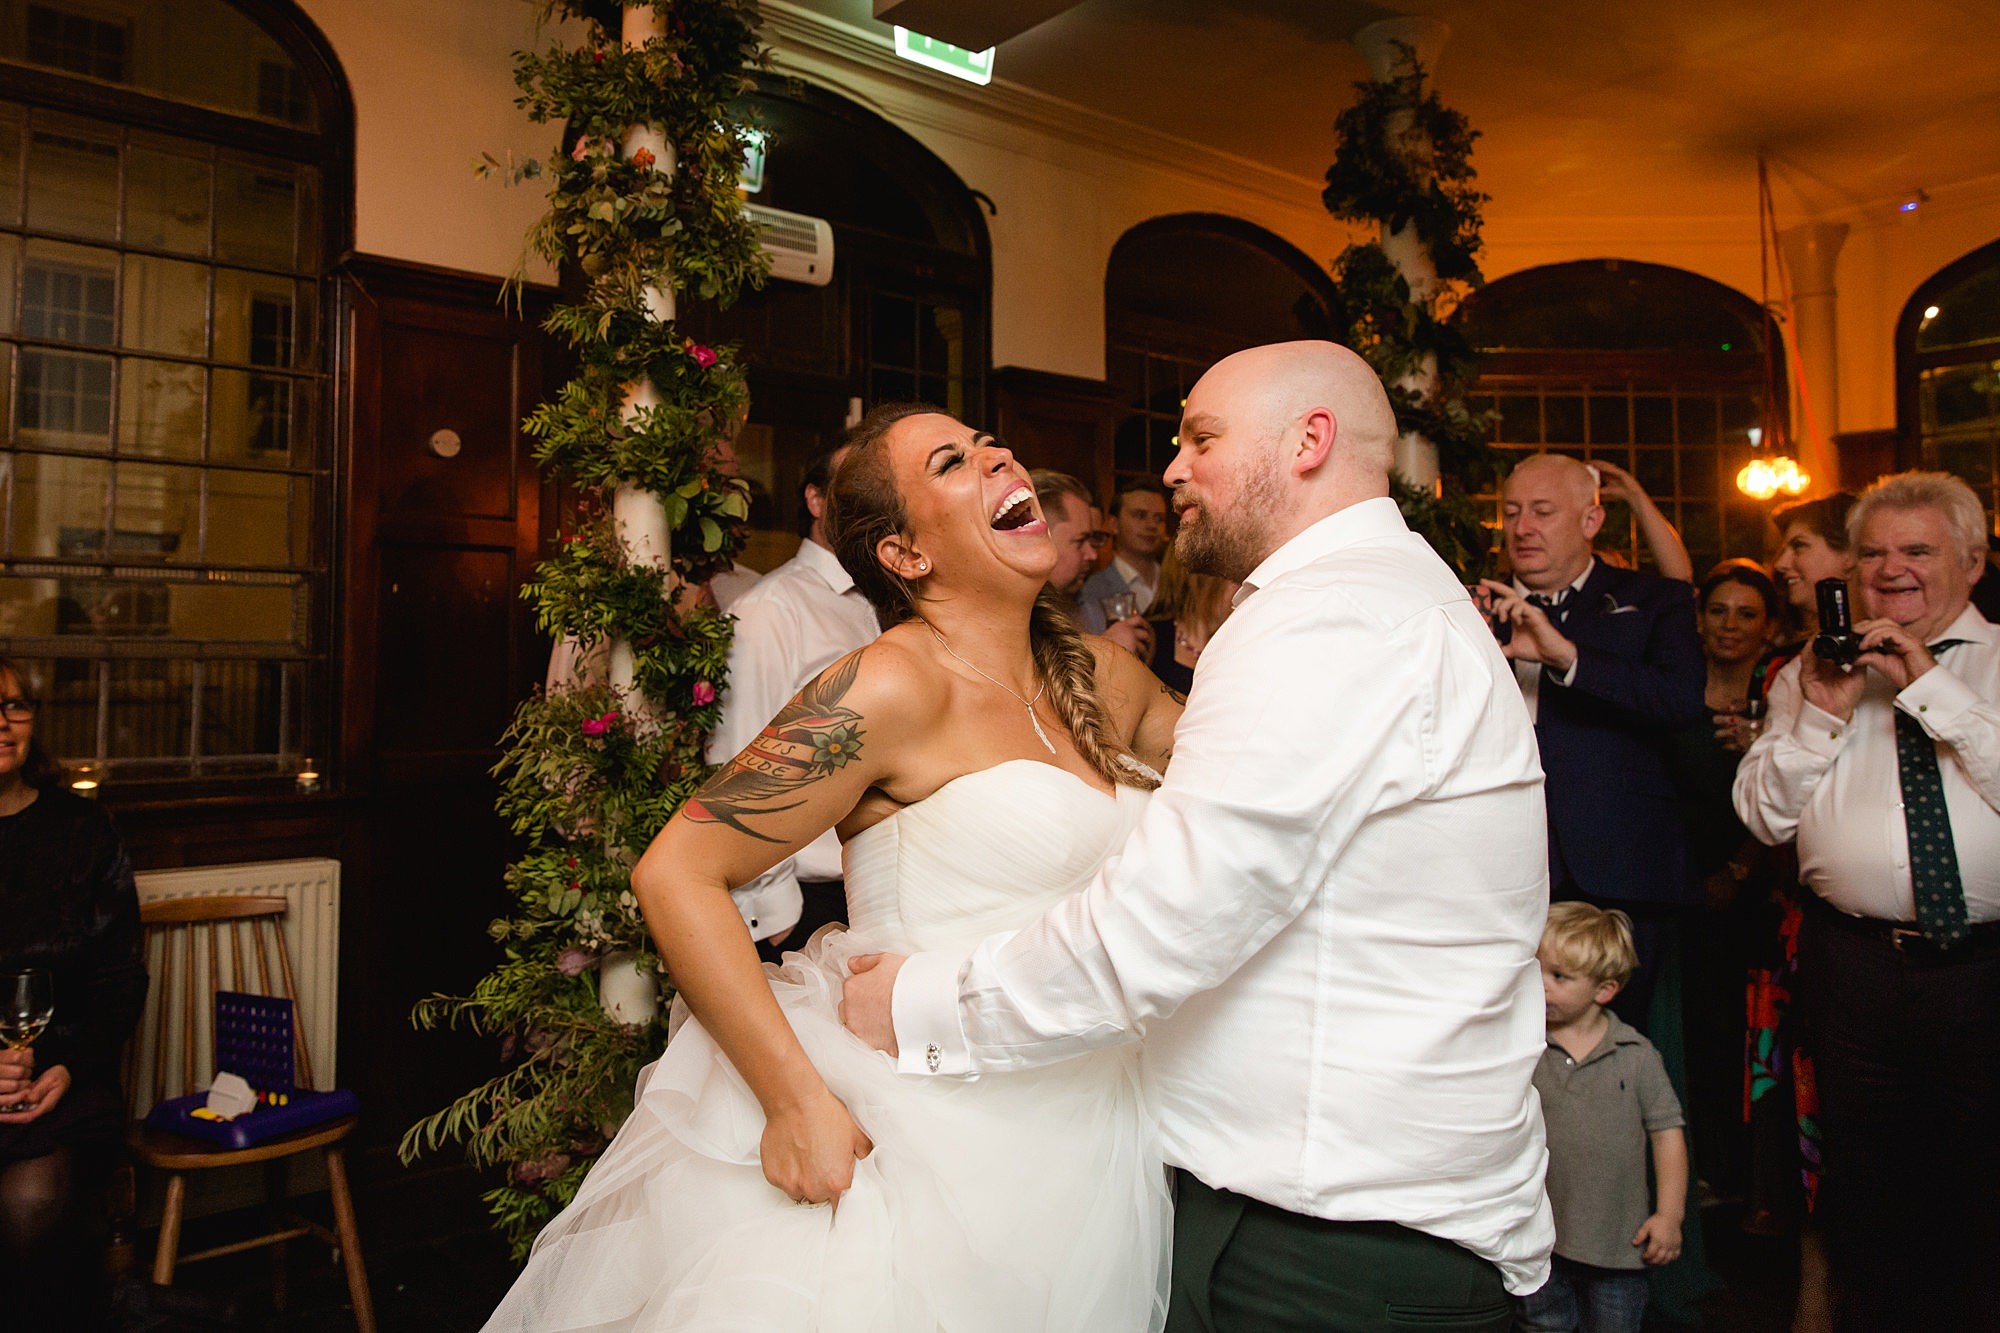 Prince albert camden wedding bride and groom laugh in first dance